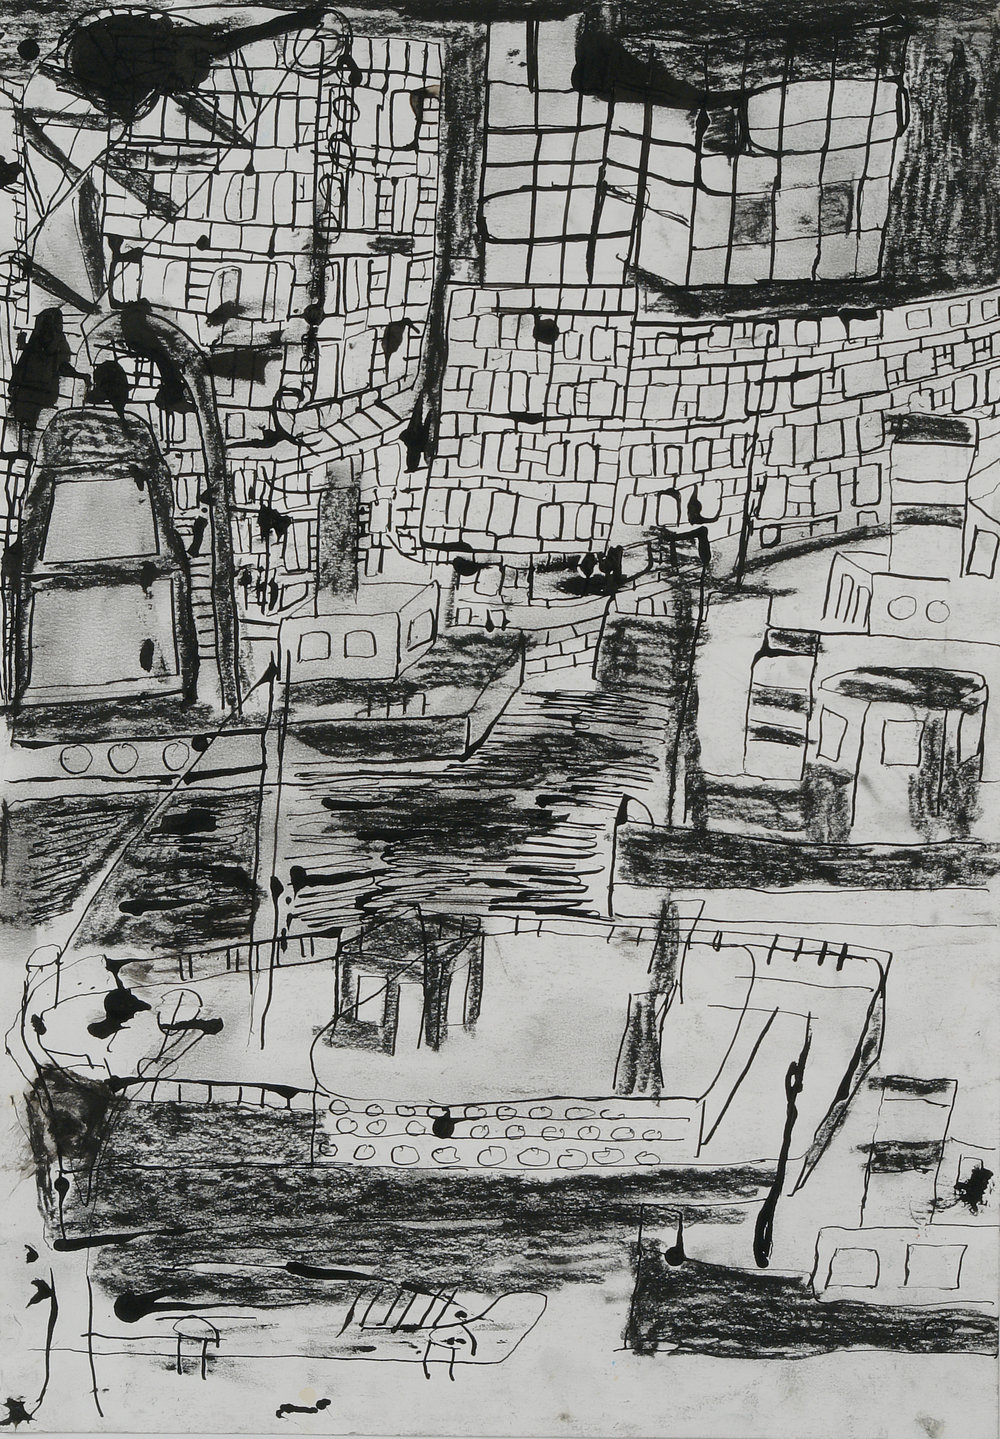 Jaco Kranendonk (Ducth, b. 1951).  De haven van Schiedam (Two Ships) , August 11, 1987. Ink on paper, 12 x 20 in. Intuit: The Center of Intuitive and Outsider Art, Gift of Galerie Atelier Herenplaats, Rotterdam, Netherlands, 2004.43.10